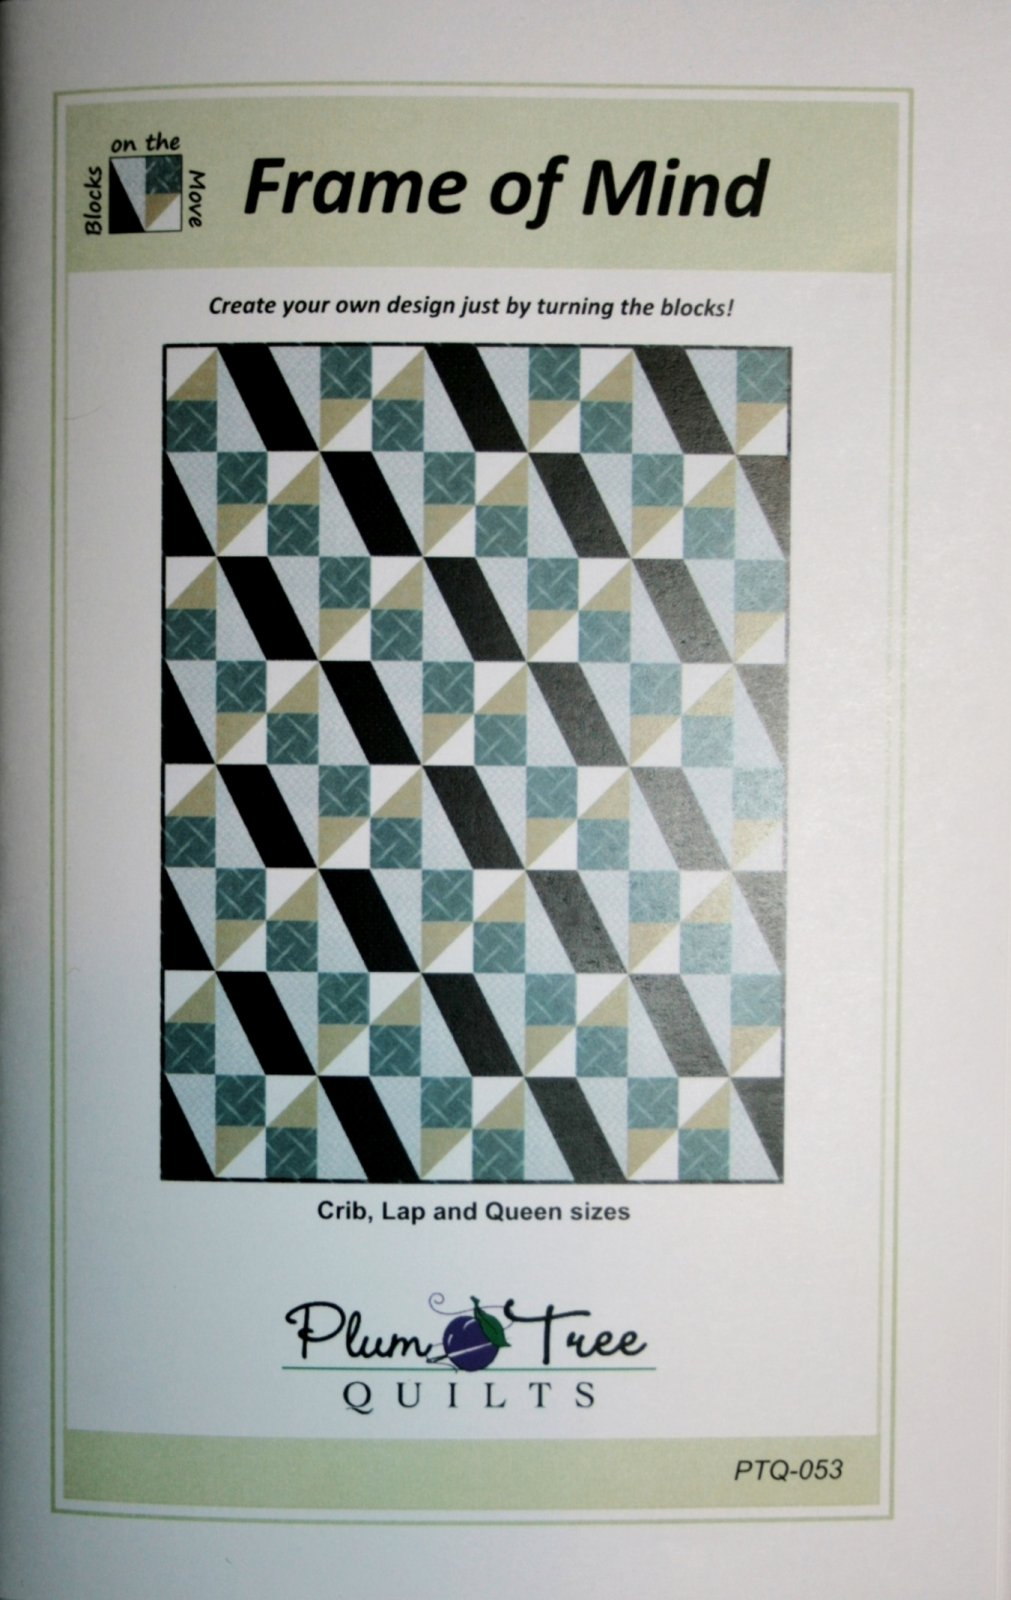 Plum Tree Quilts Frame of Mind quilt pattern PTQ-053 - 738435949273